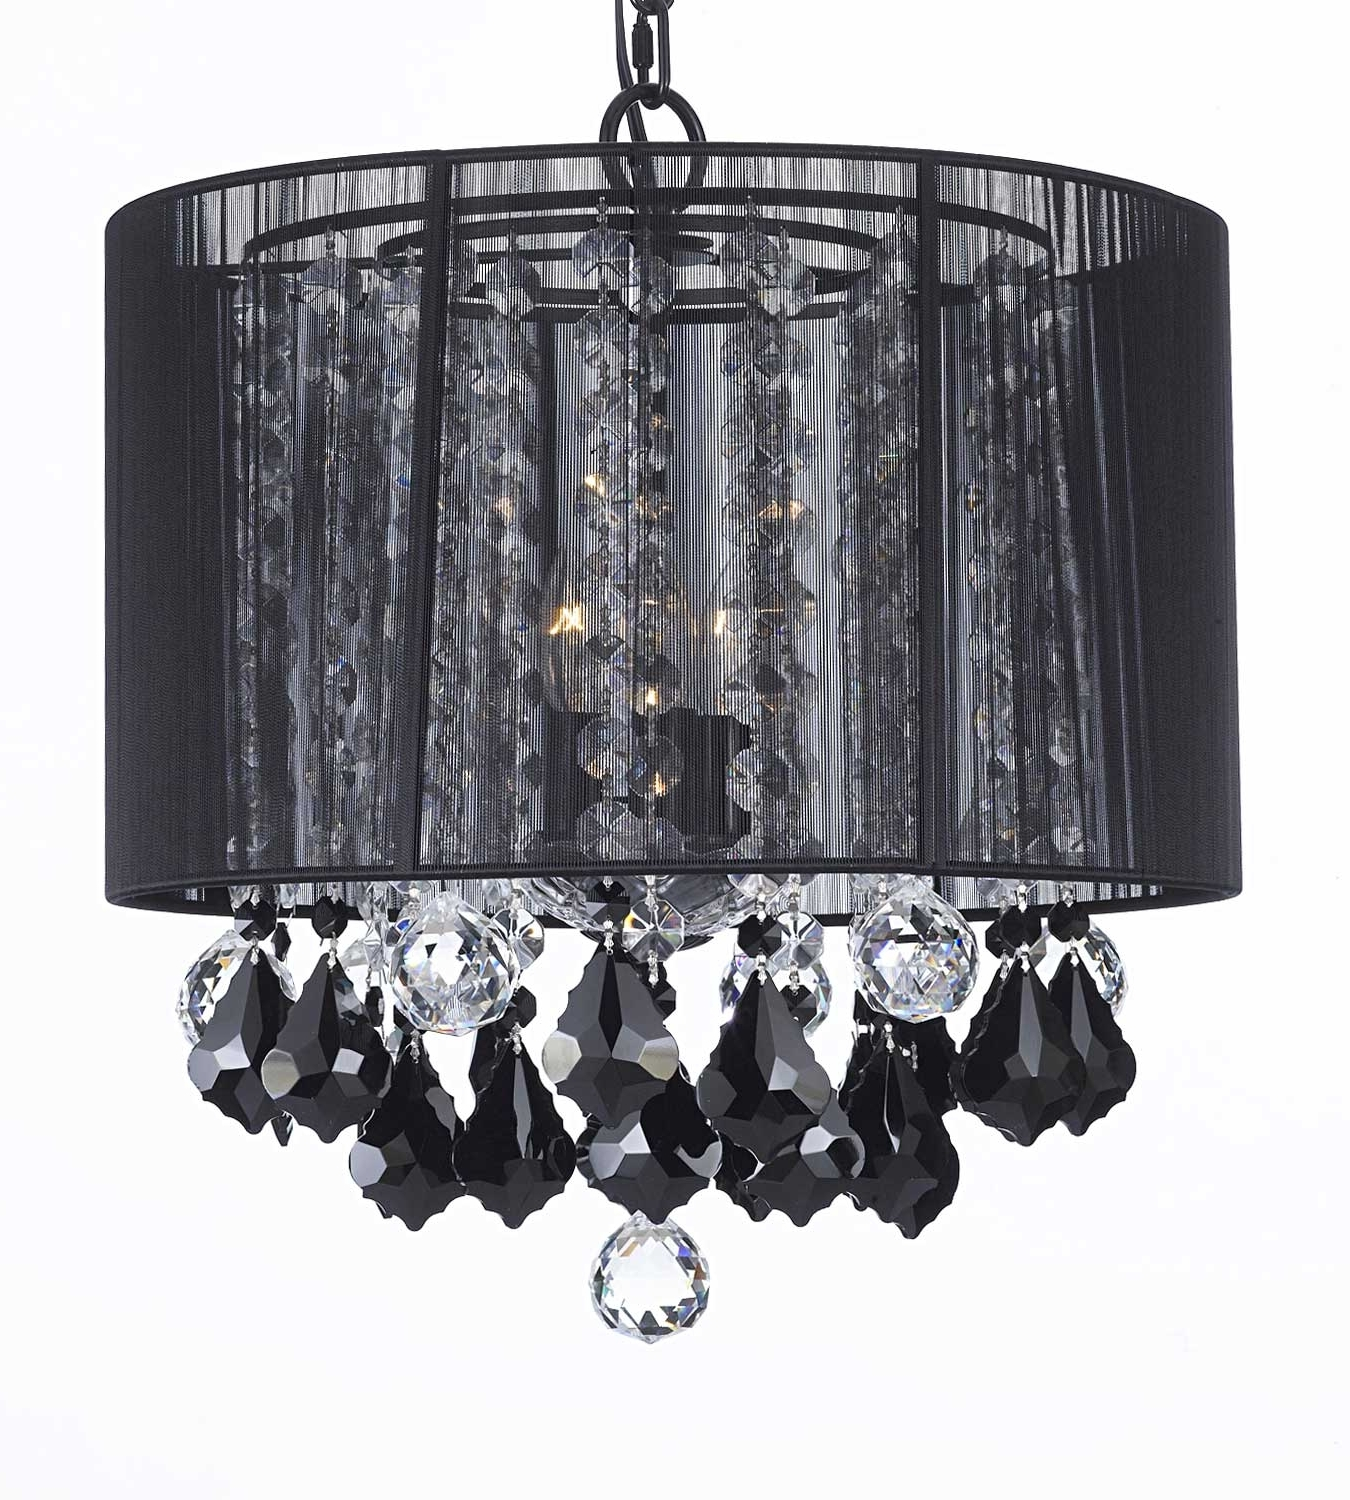 G7 Black/604/3 Gallery Chandeliers With Shades Crystal Chandelier Regarding Best And Newest Chandeliers With Black Shades (View 5 of 15)